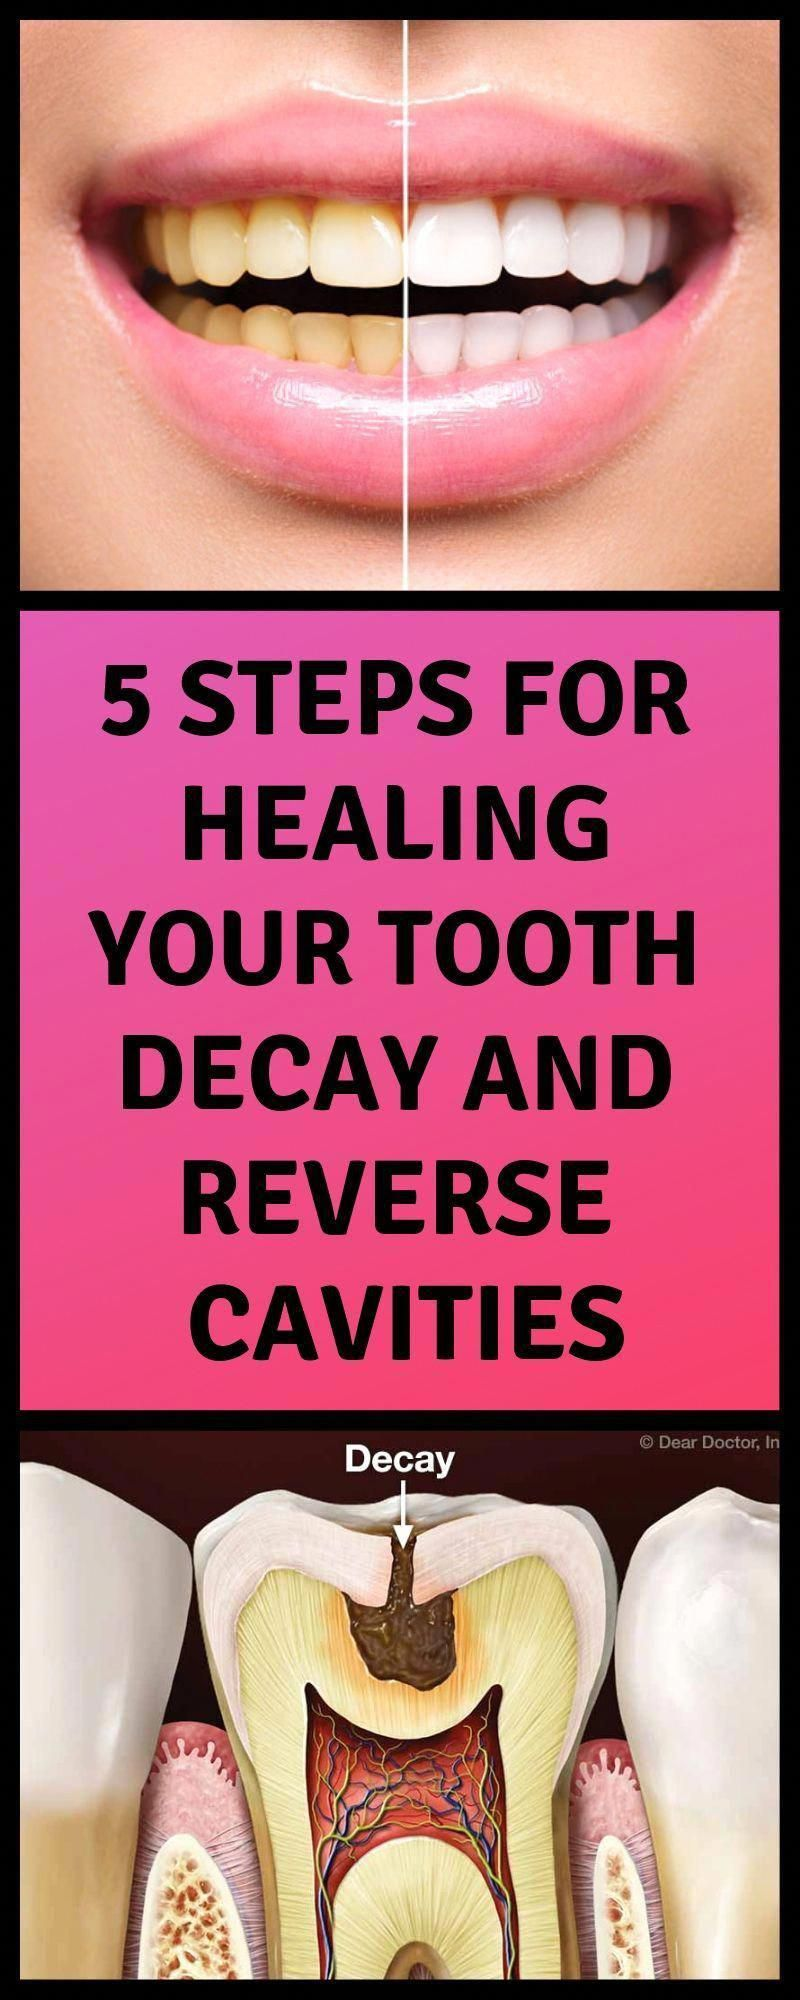 Symptomatic Tooth Decay Healthy Teeth toothbrushes